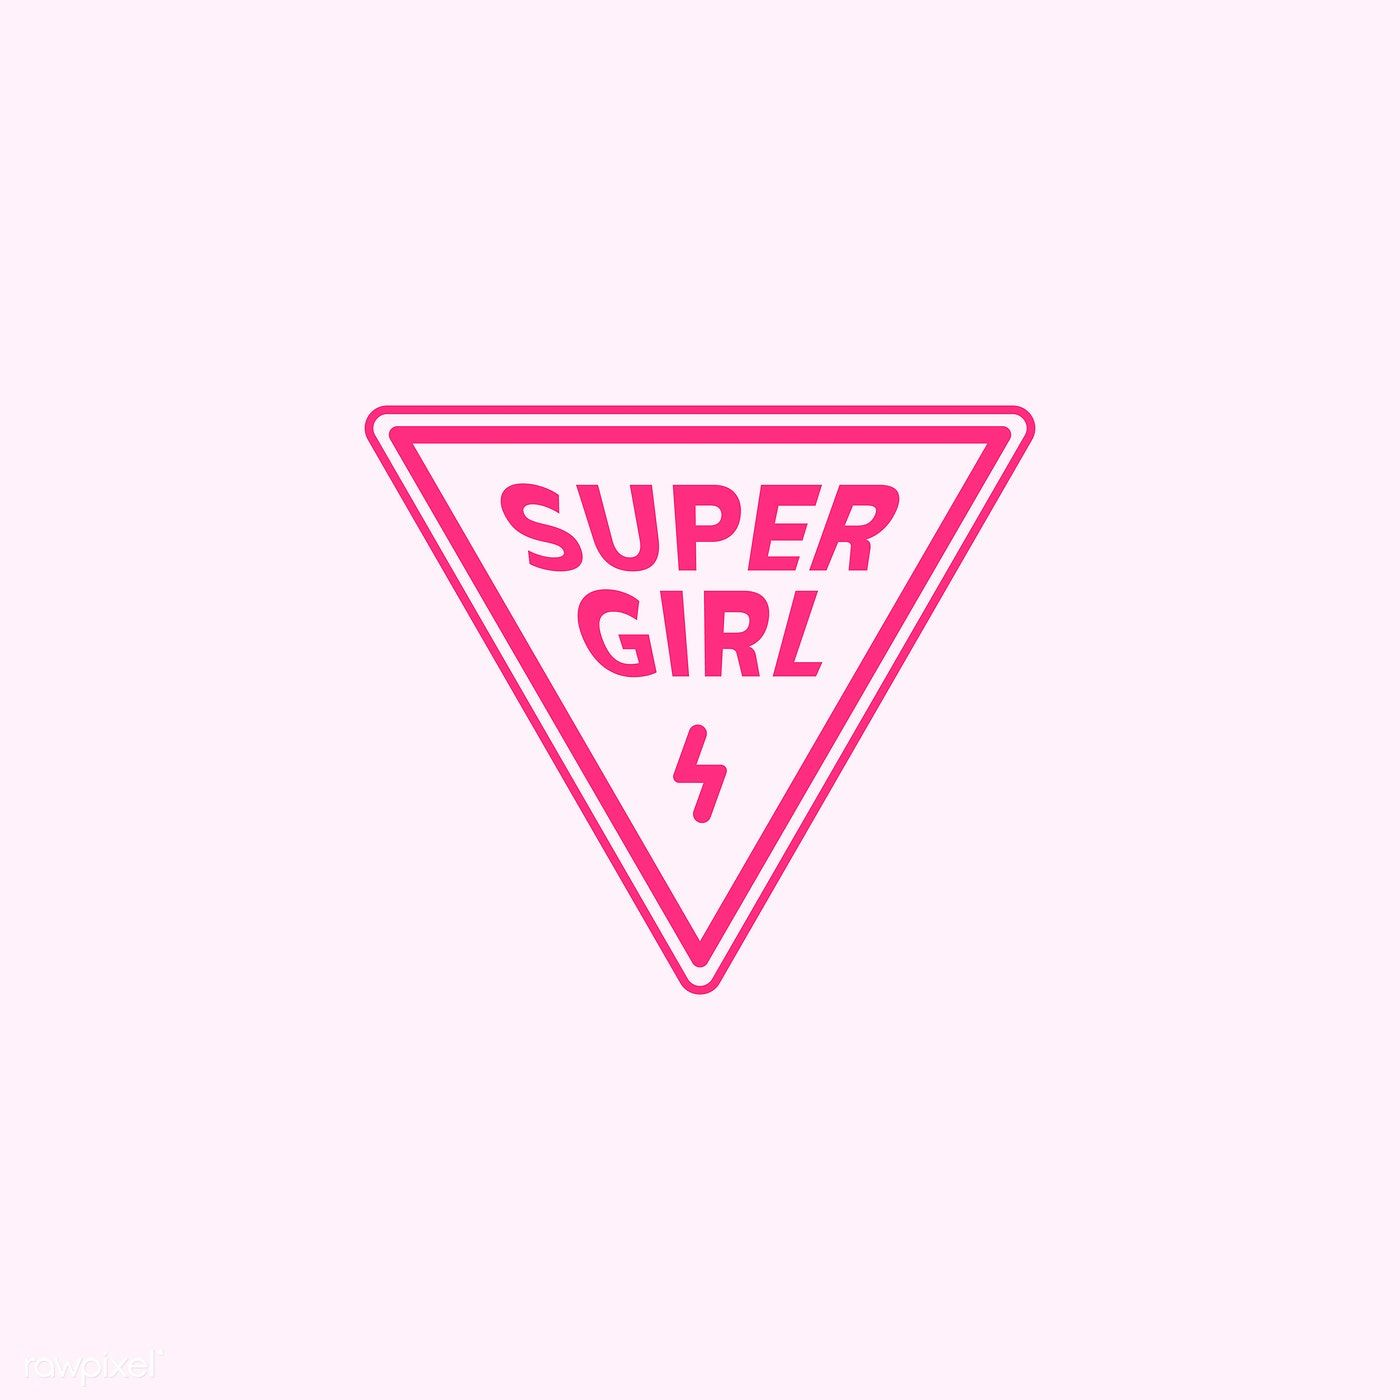 Super Girl Triangle Emblem Badge Illustration Free Image By Rawpixel Com Ningzk V In 2020 Vector Free Supergirl Badge